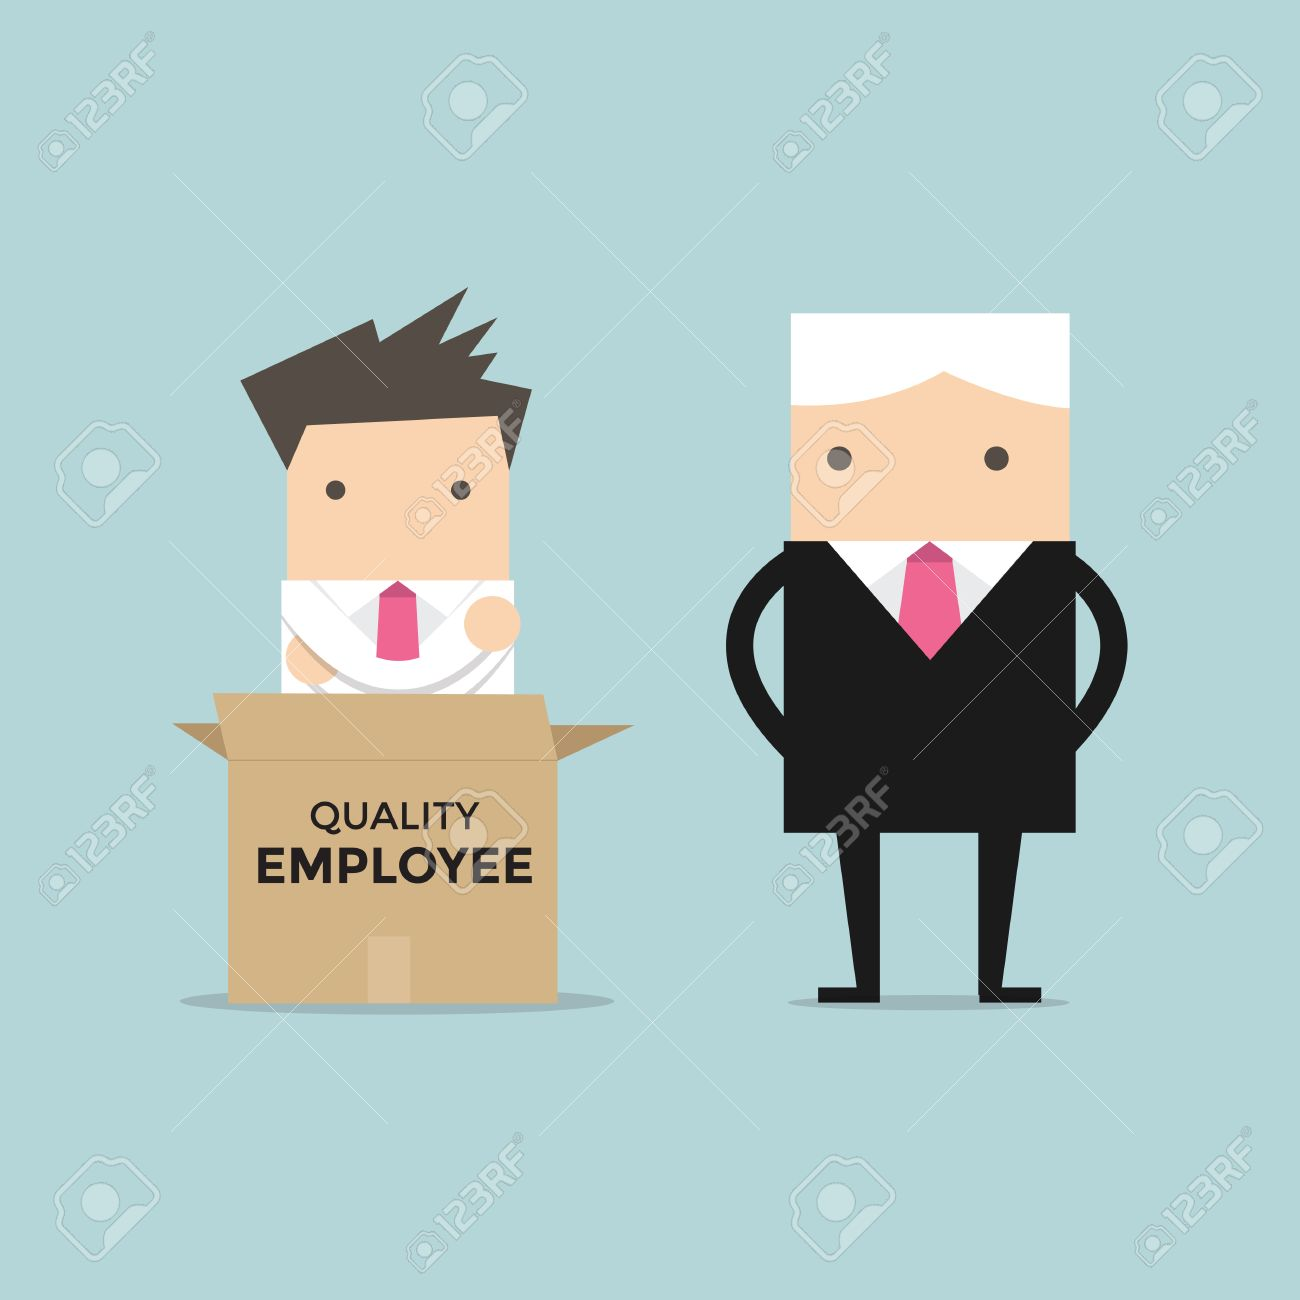 good employee images stock pictures royalty good employee good employee manager unpack a box of quality employee